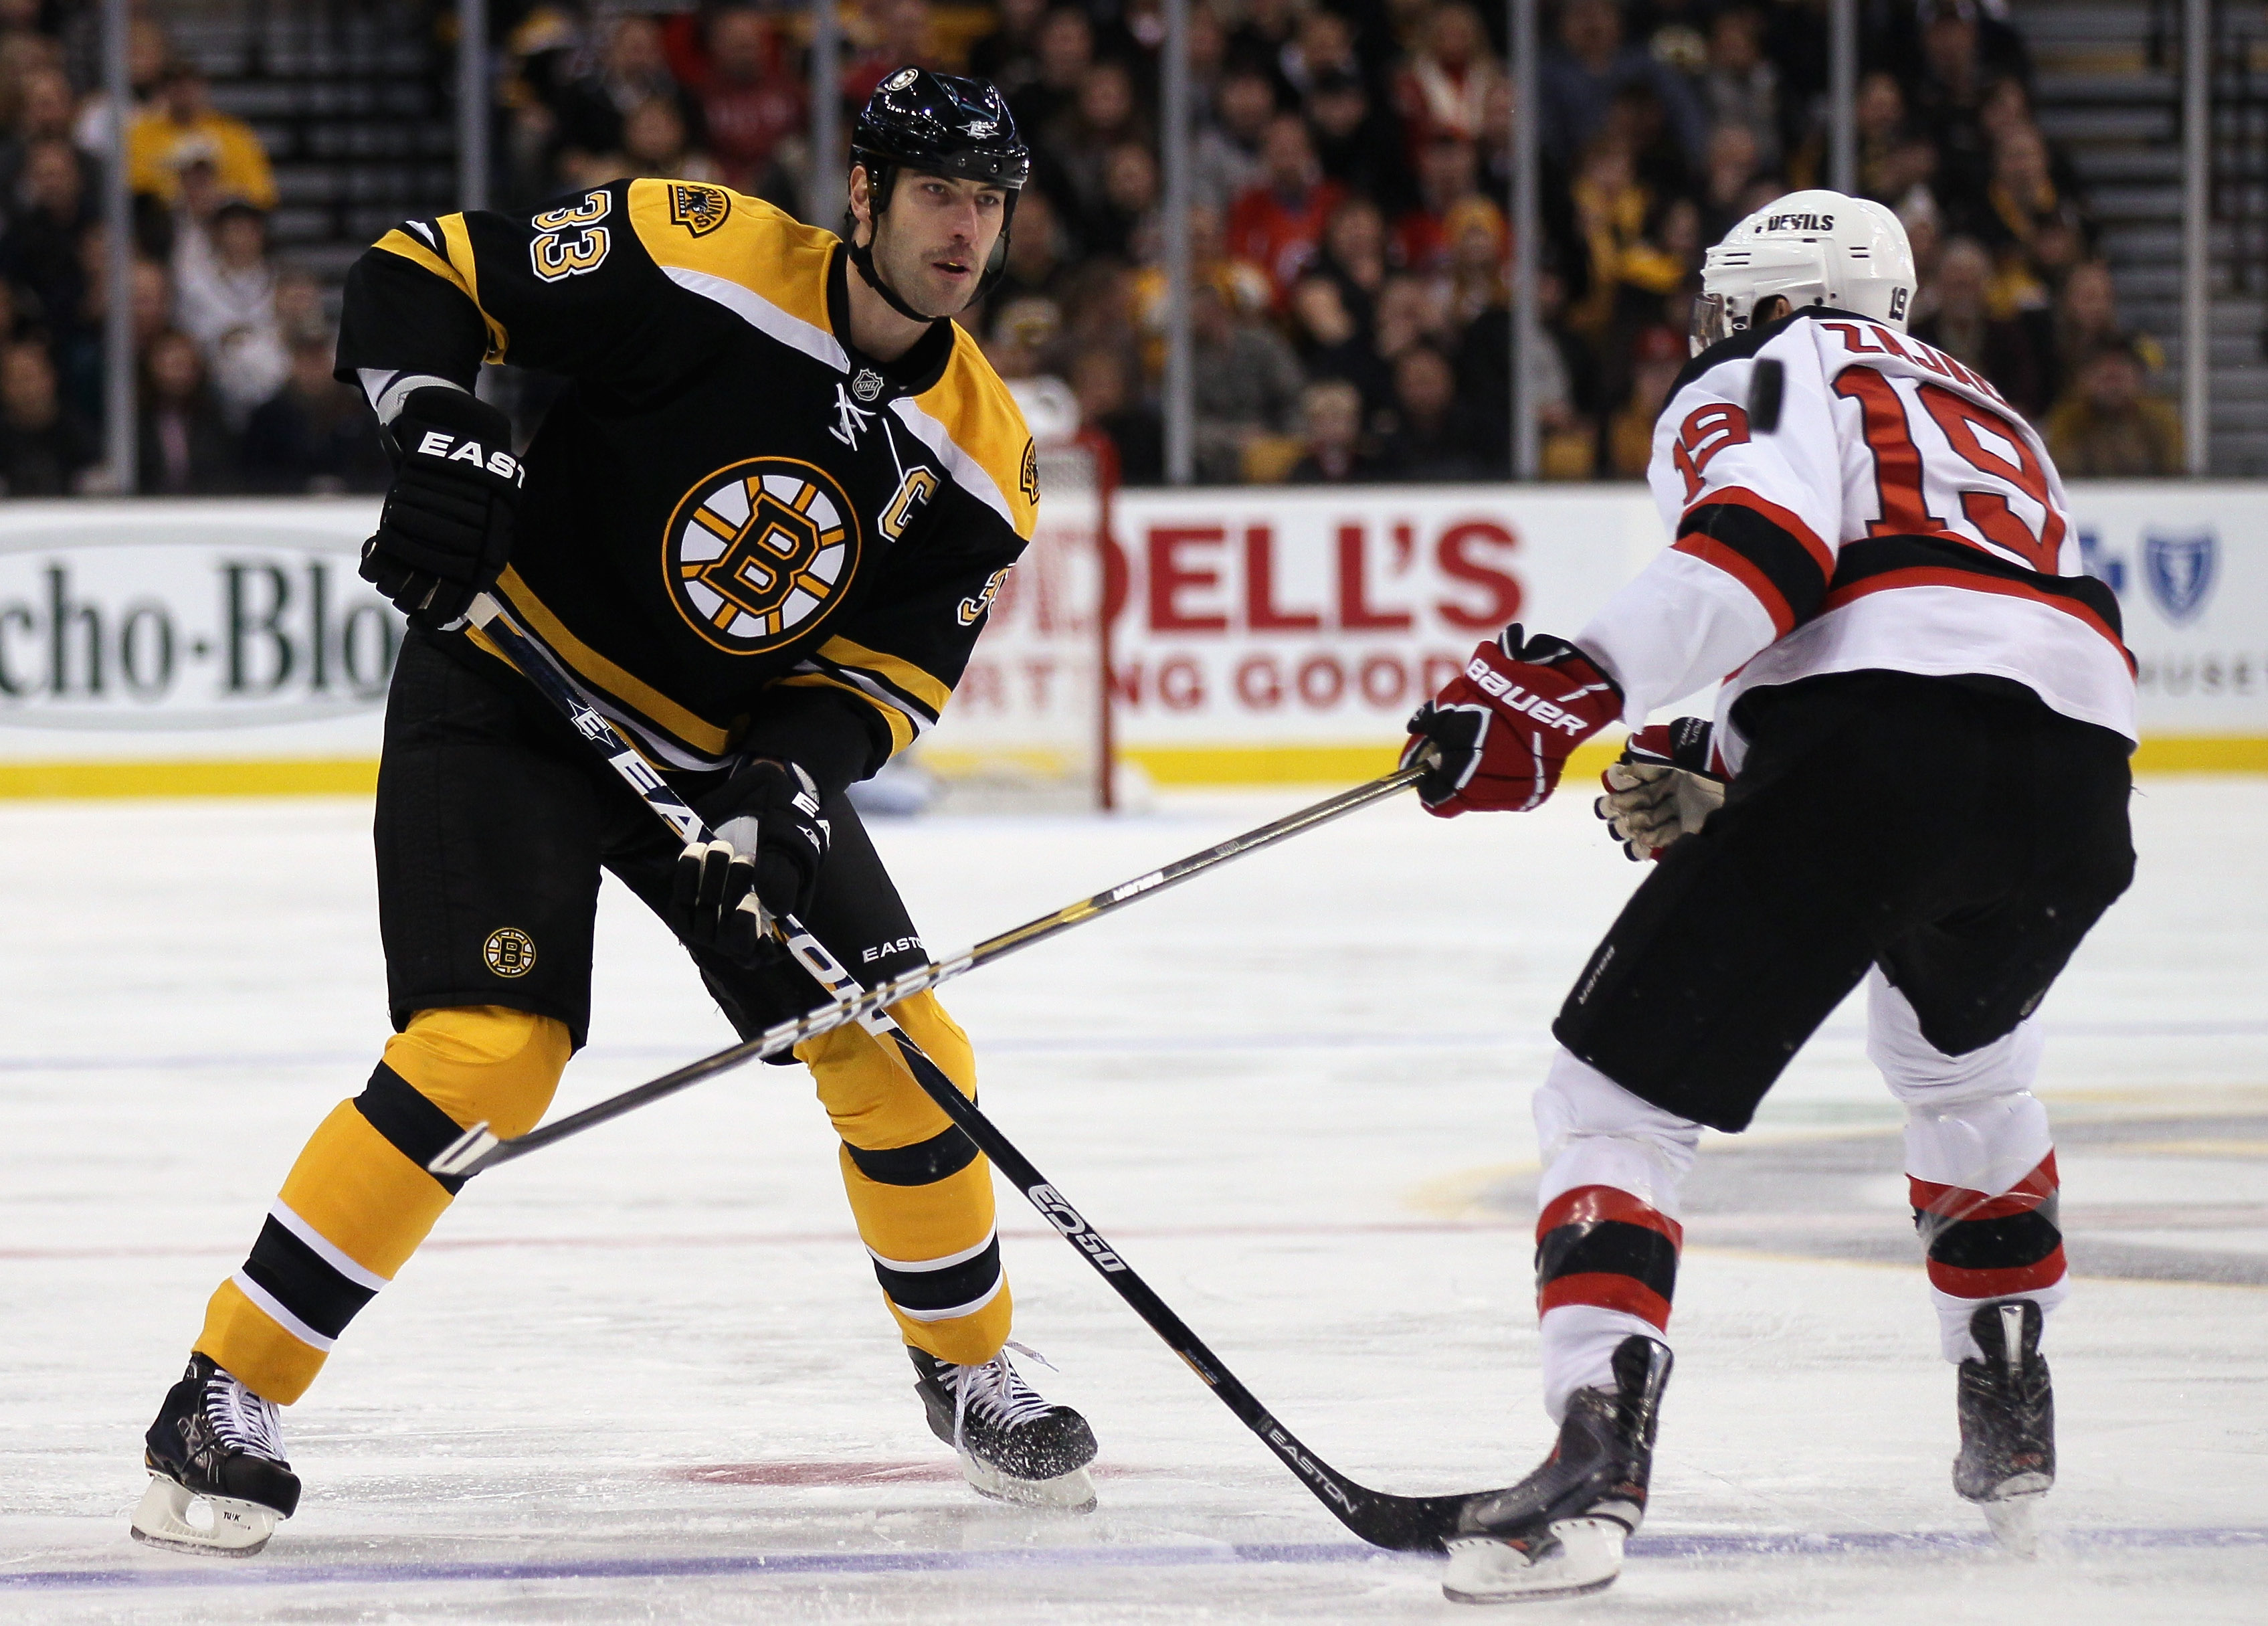 BOSTON - NOVEMBER 15: Zdeno Chara #33 of the Boston Bruins keeps the puck as Travis Zajac #19 of the New Jersey Devils defends on November 15, 2010 at the TD Garden in Boston, Massachusetts.  (Photo by Elsa/Getty Images)